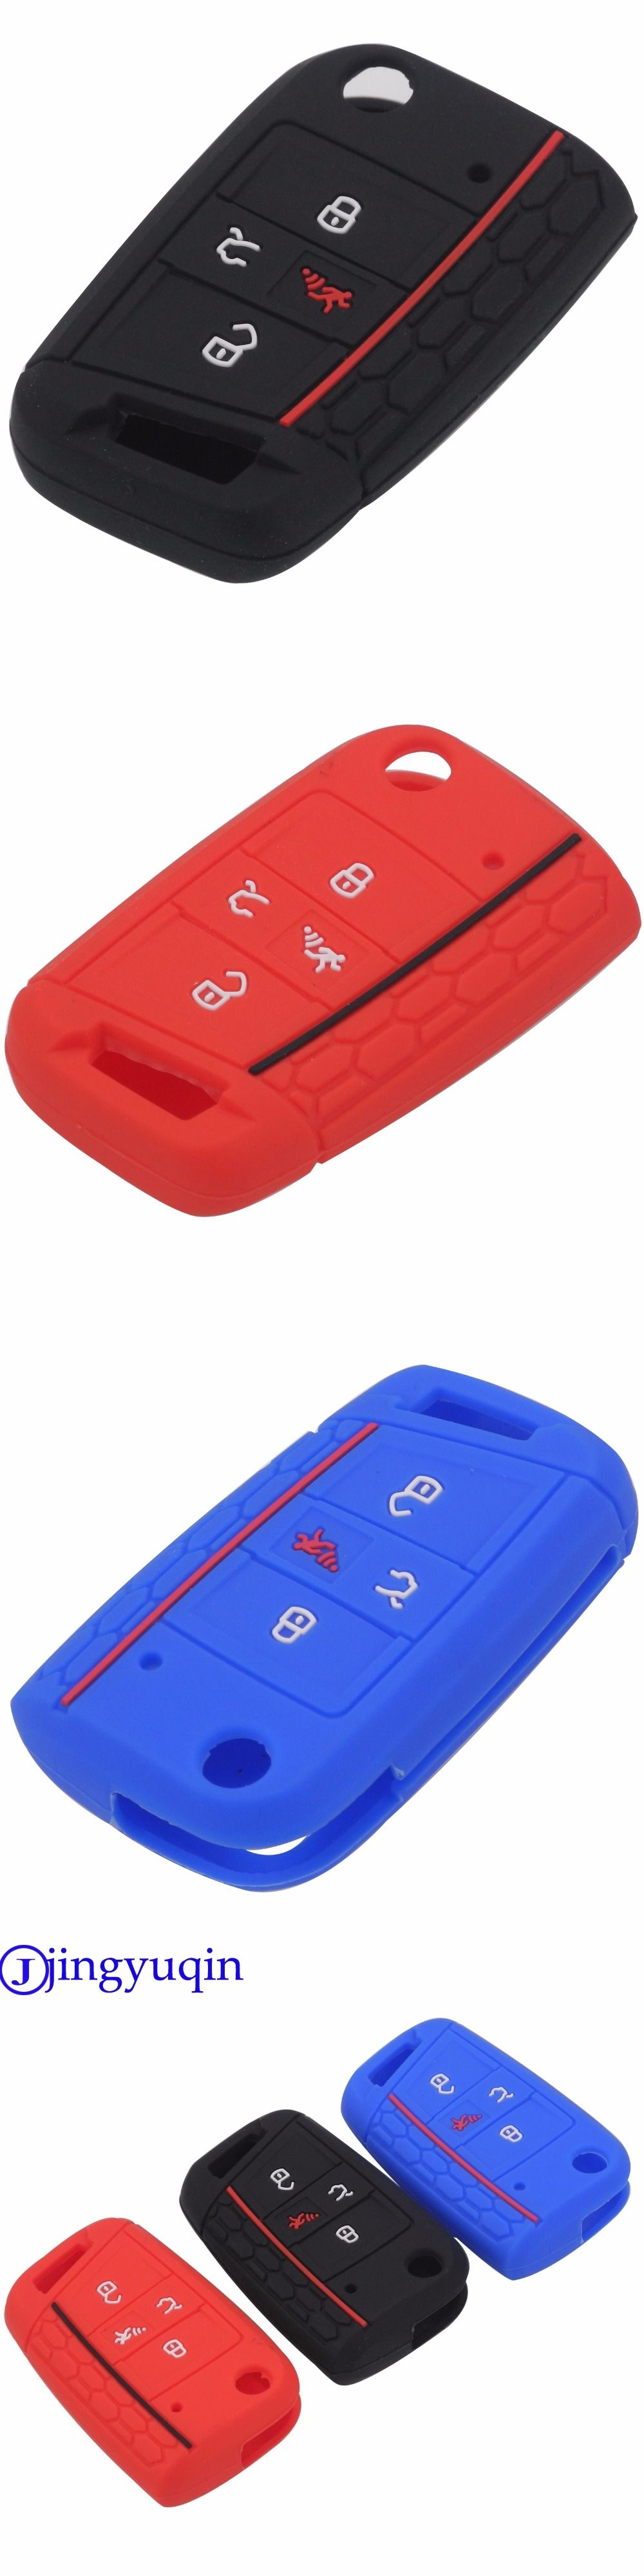 jingyuqin 4 Buttons Flid Key Silicone Fob Cover Case Skin For VW ...